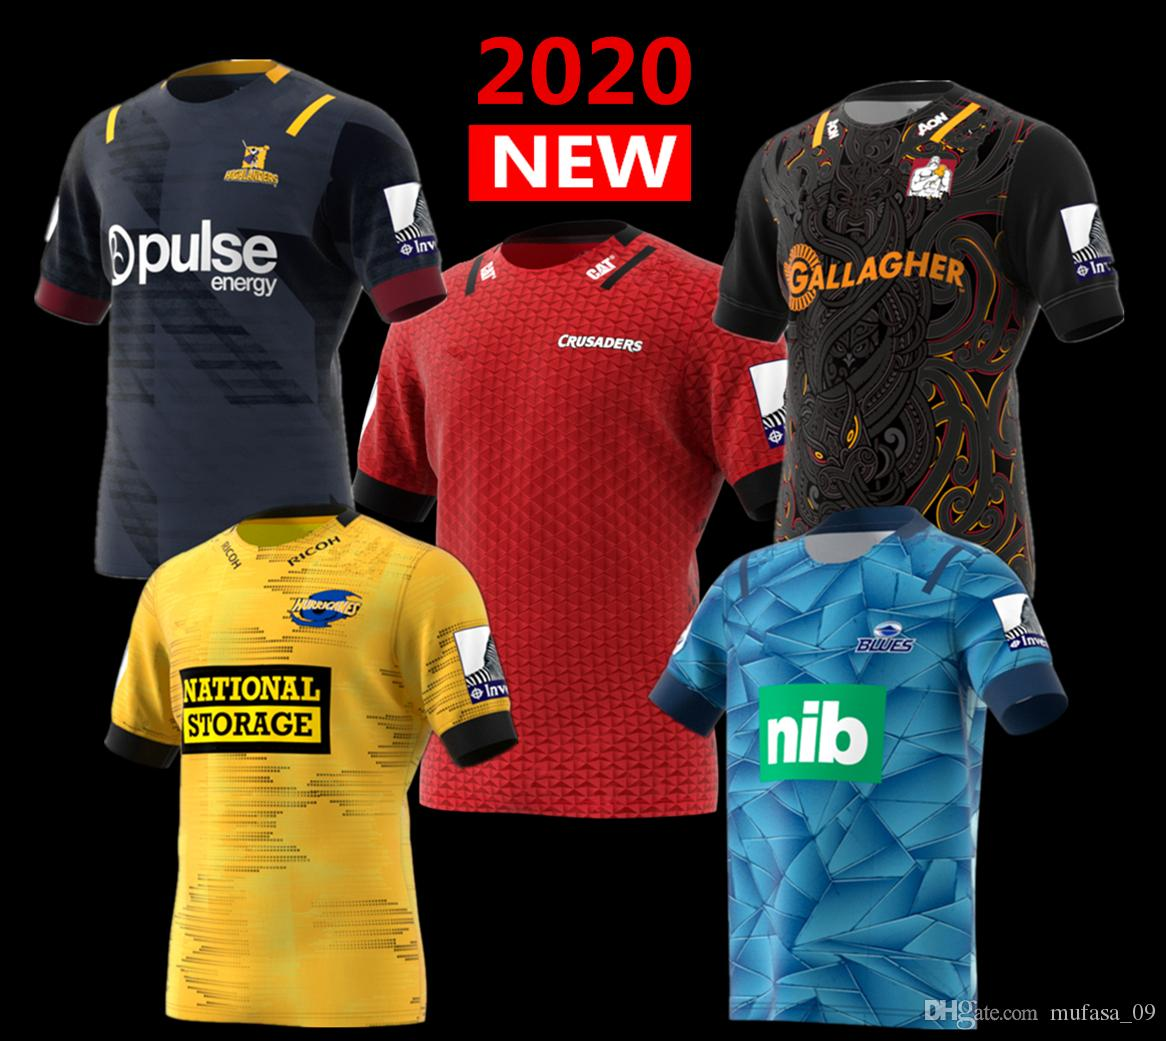 Nouvelle-Zélande Super Rugby Jersey 2020 Highlanders Crusaders maison Jersey Hurricanes bleus Rugby Jersey chemise grande taille-s 5xl